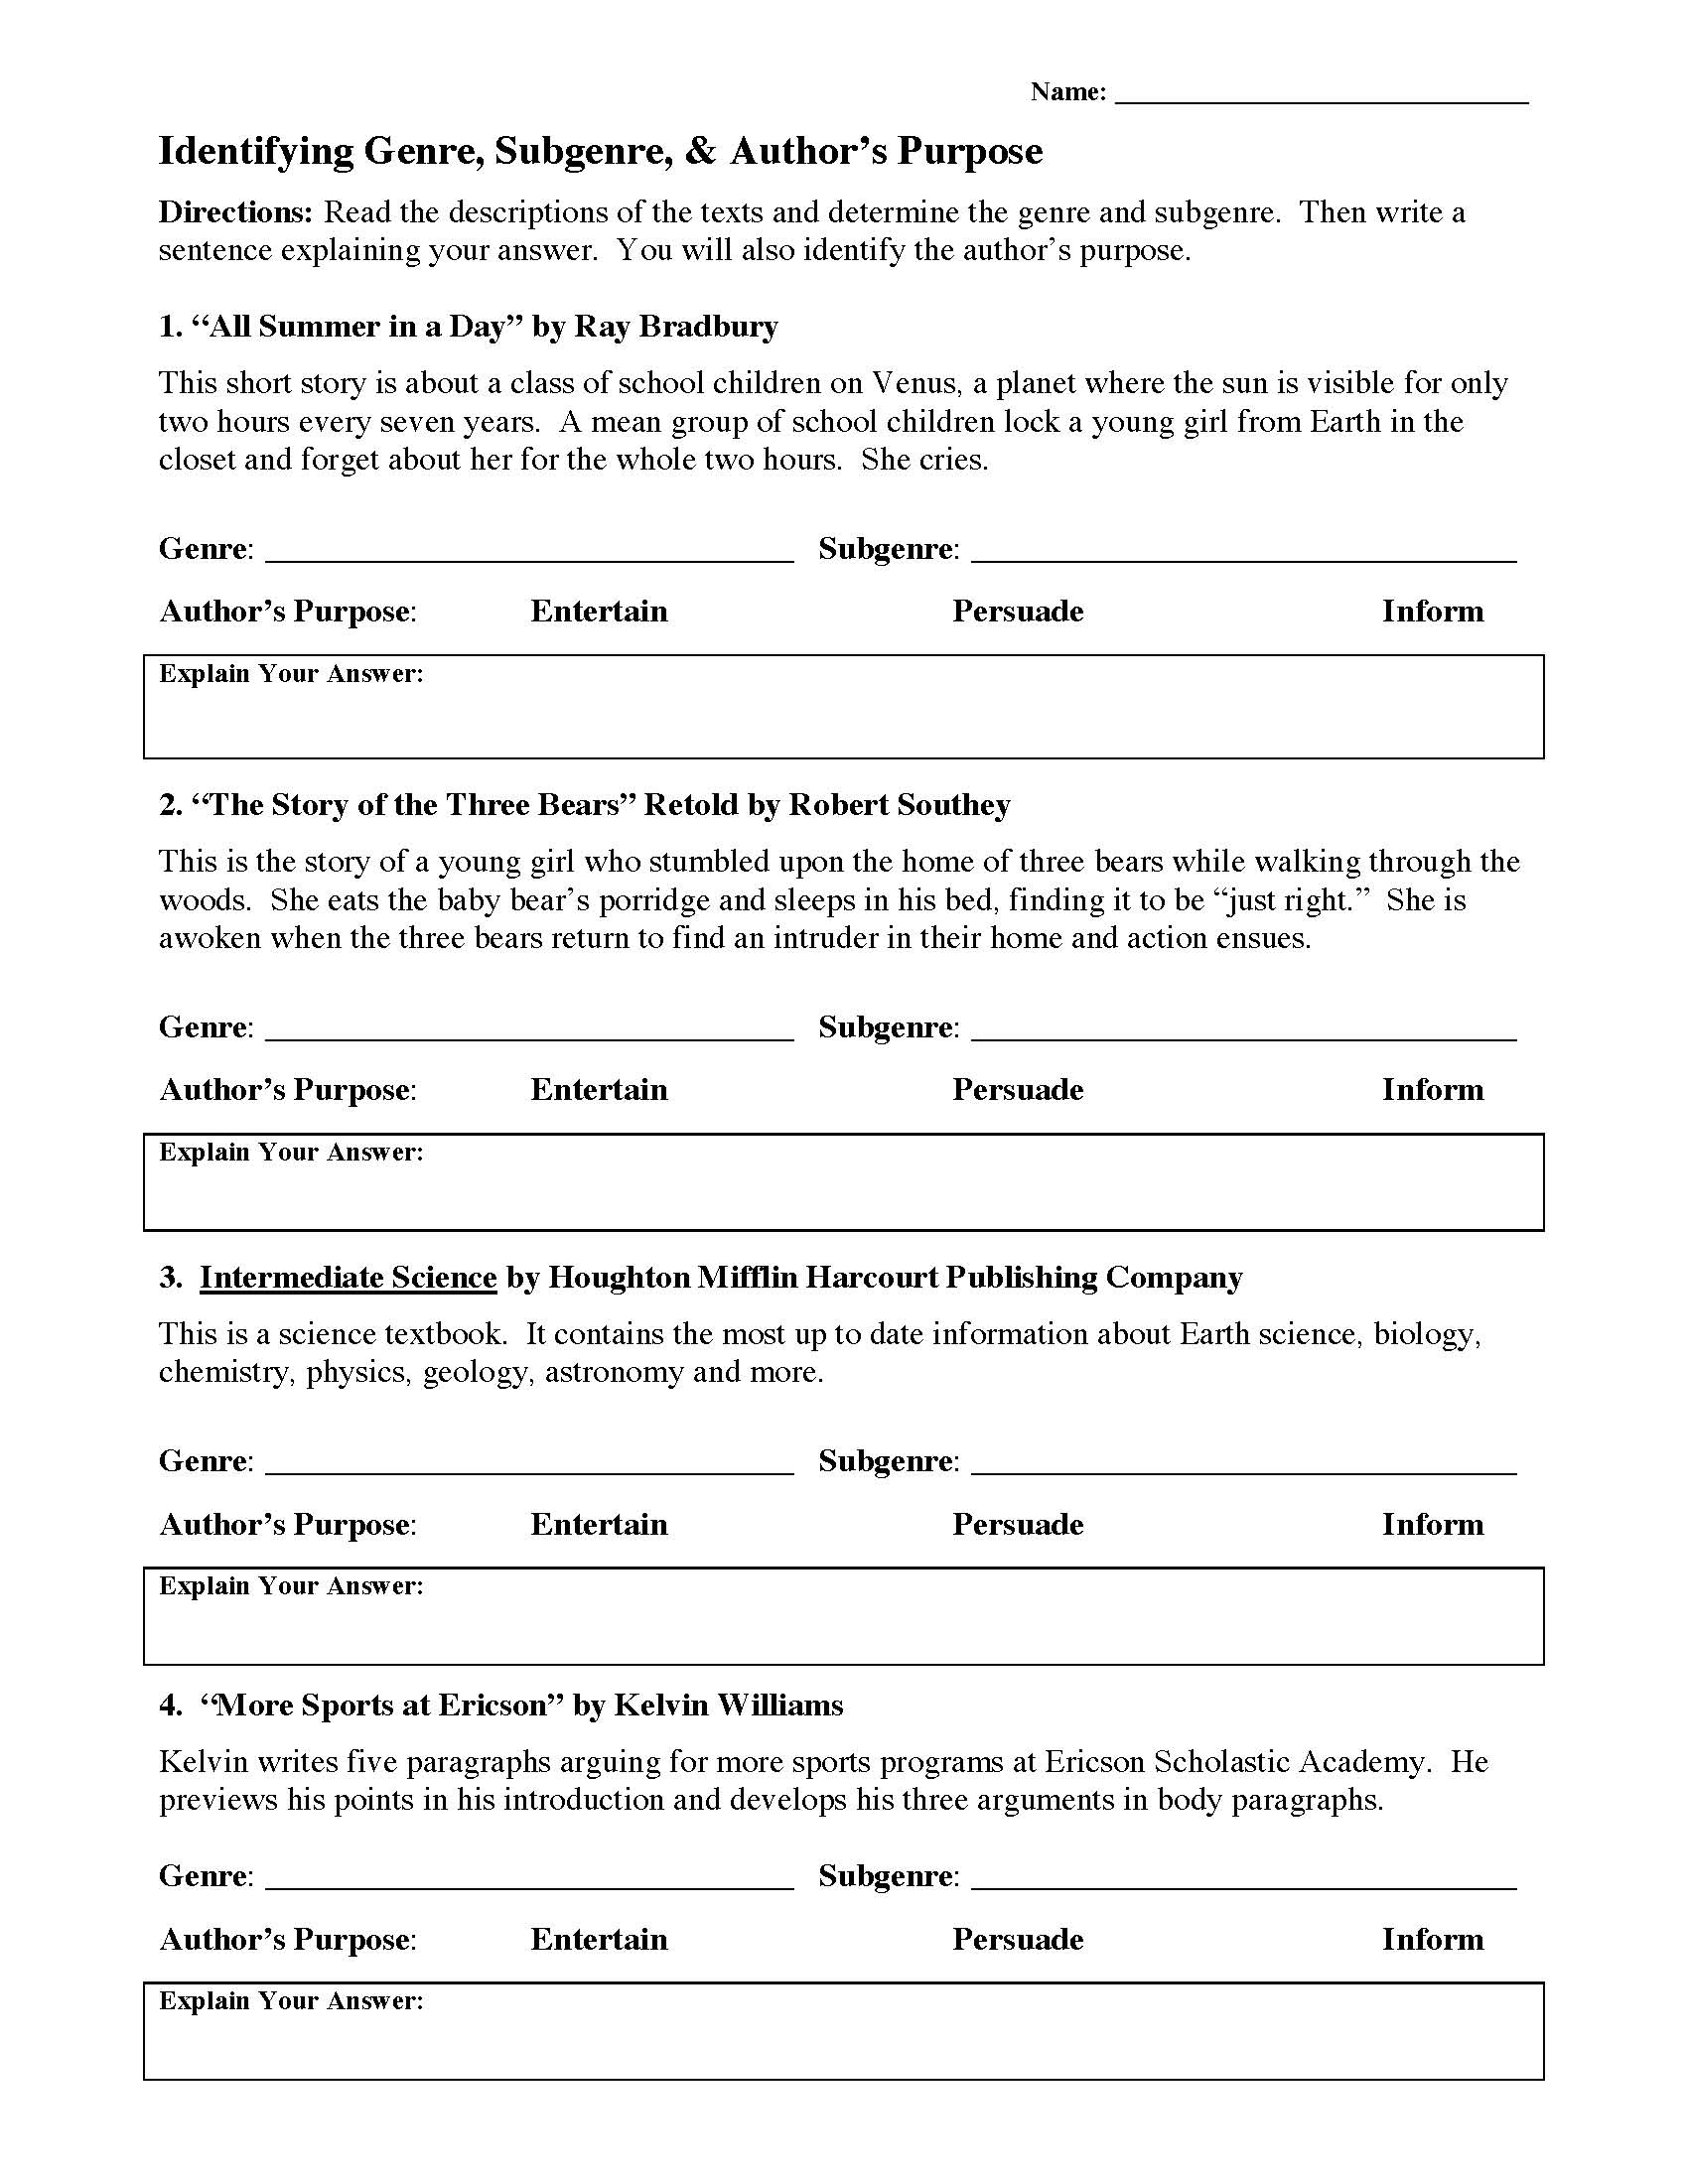 Genre And Author S Purpose Worksheet 1